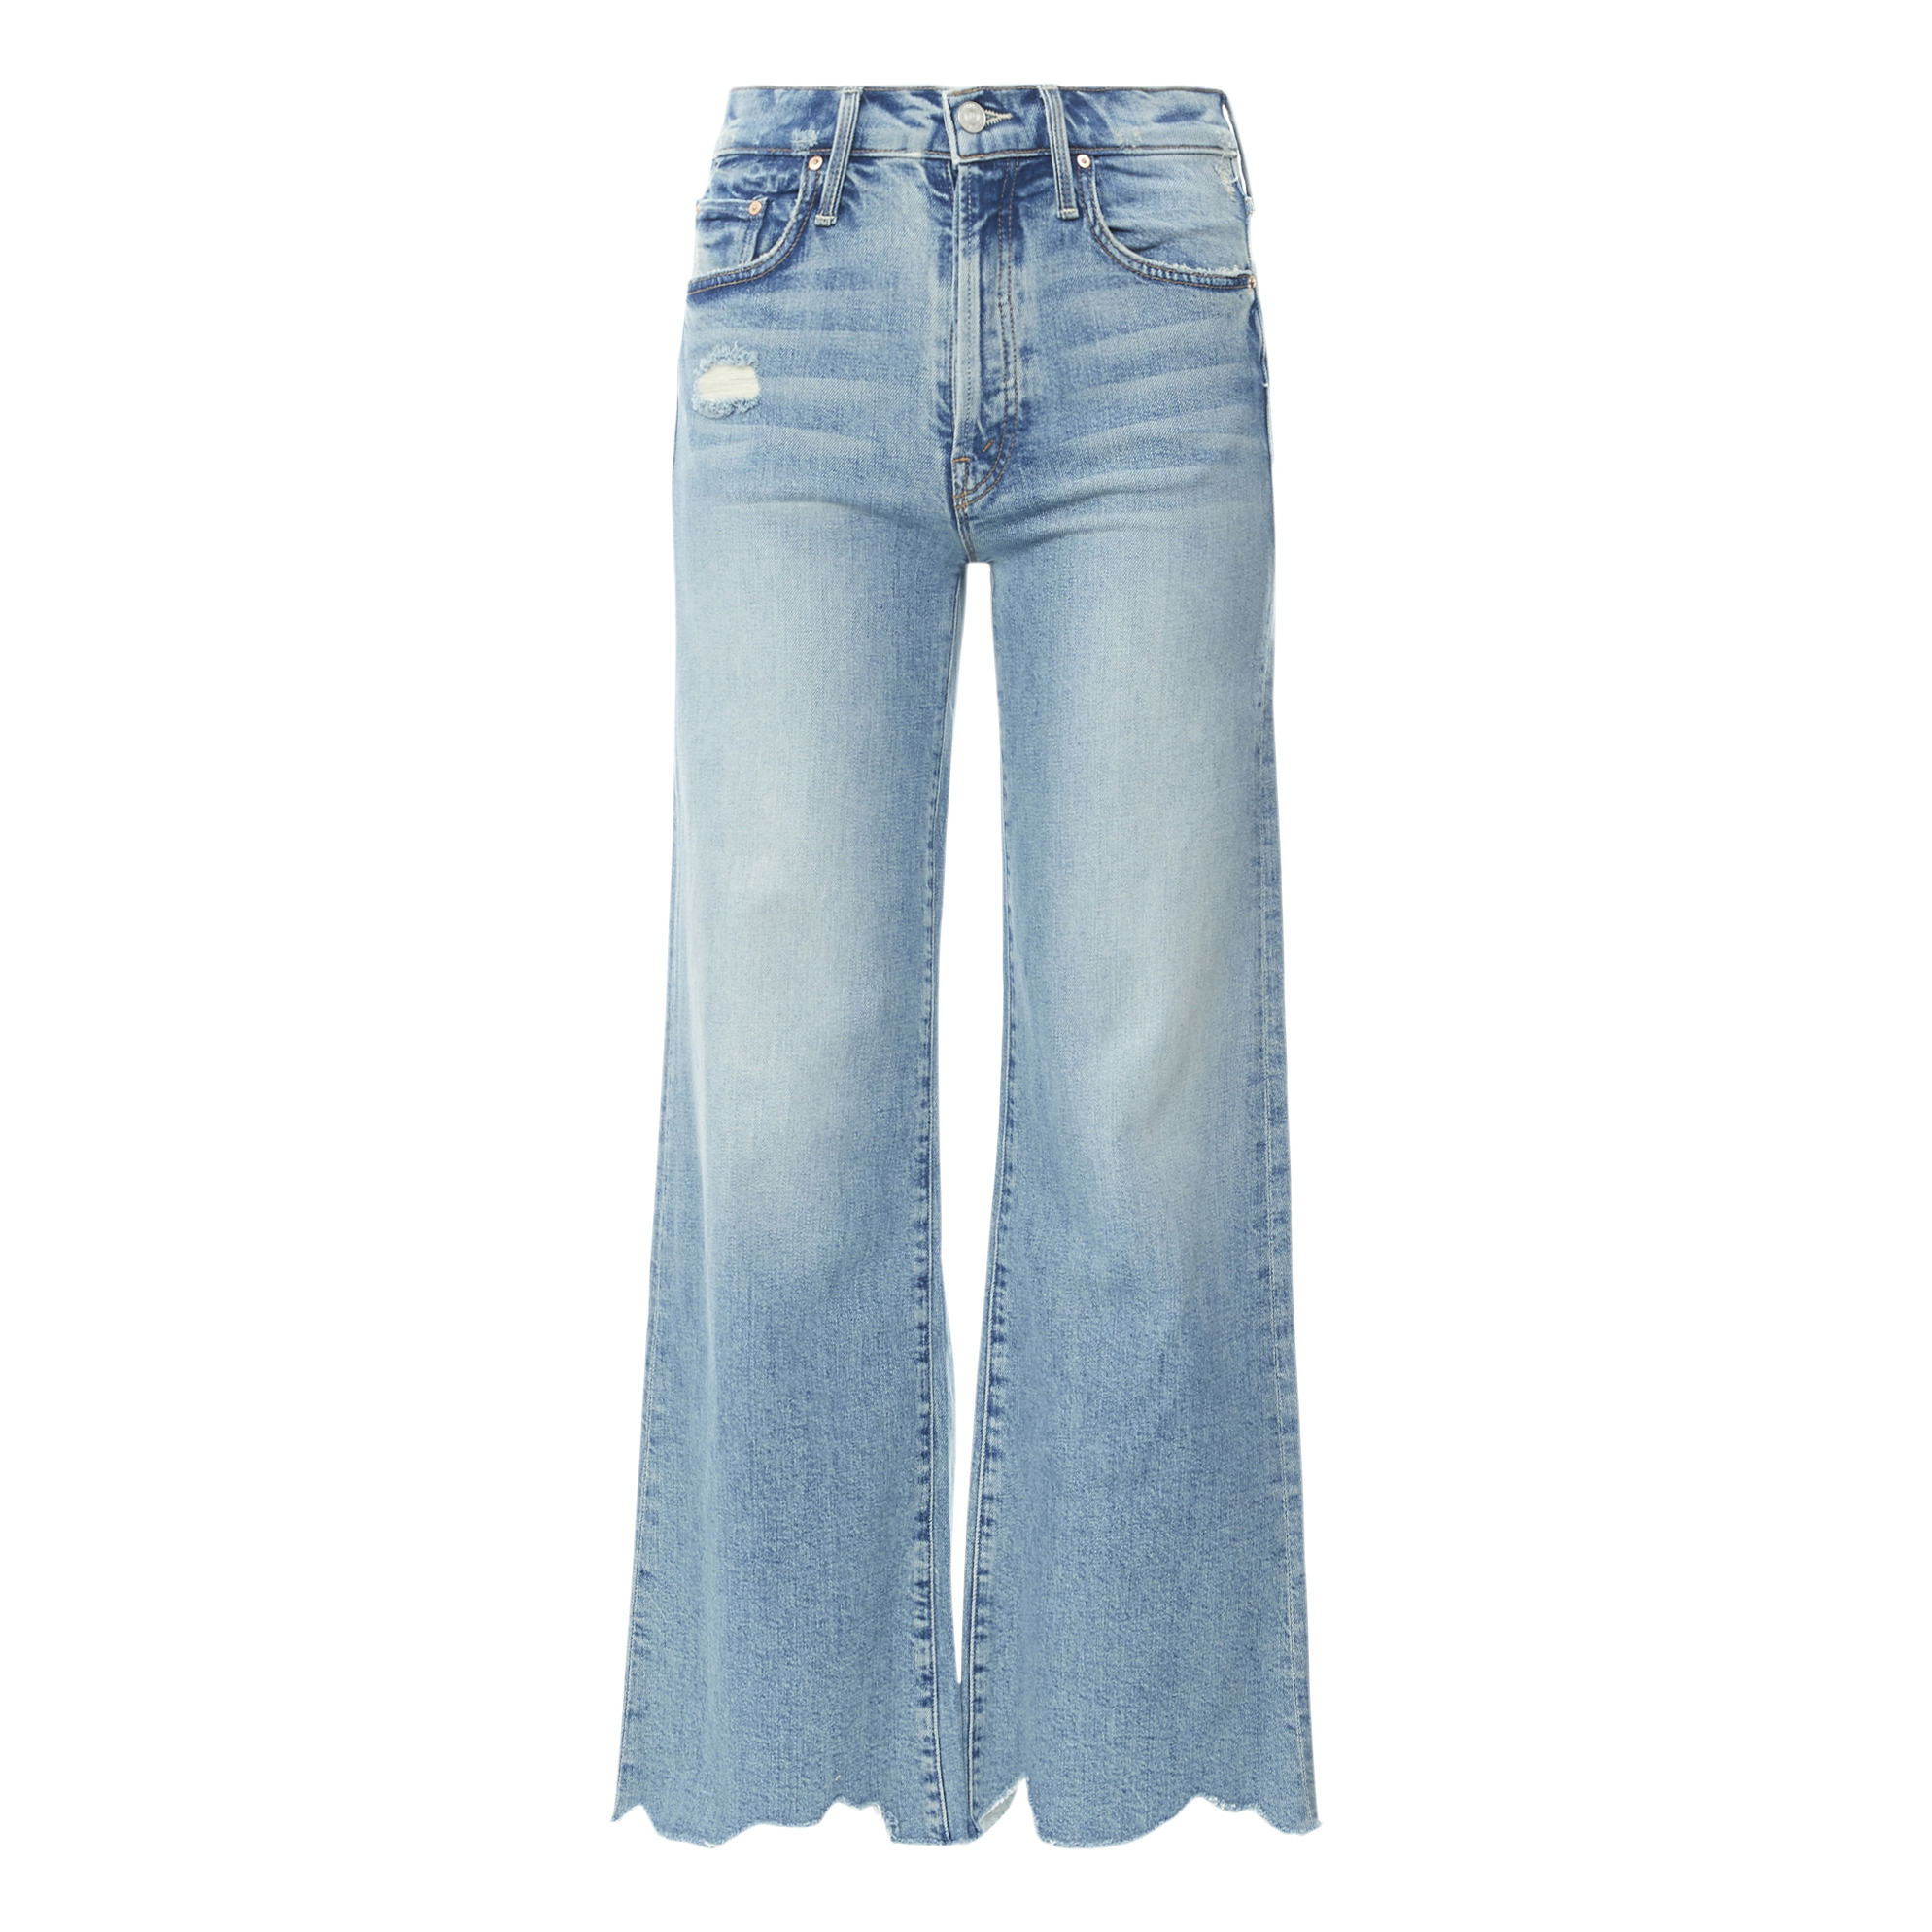 Jeans Large The Tomcat Roller Chew